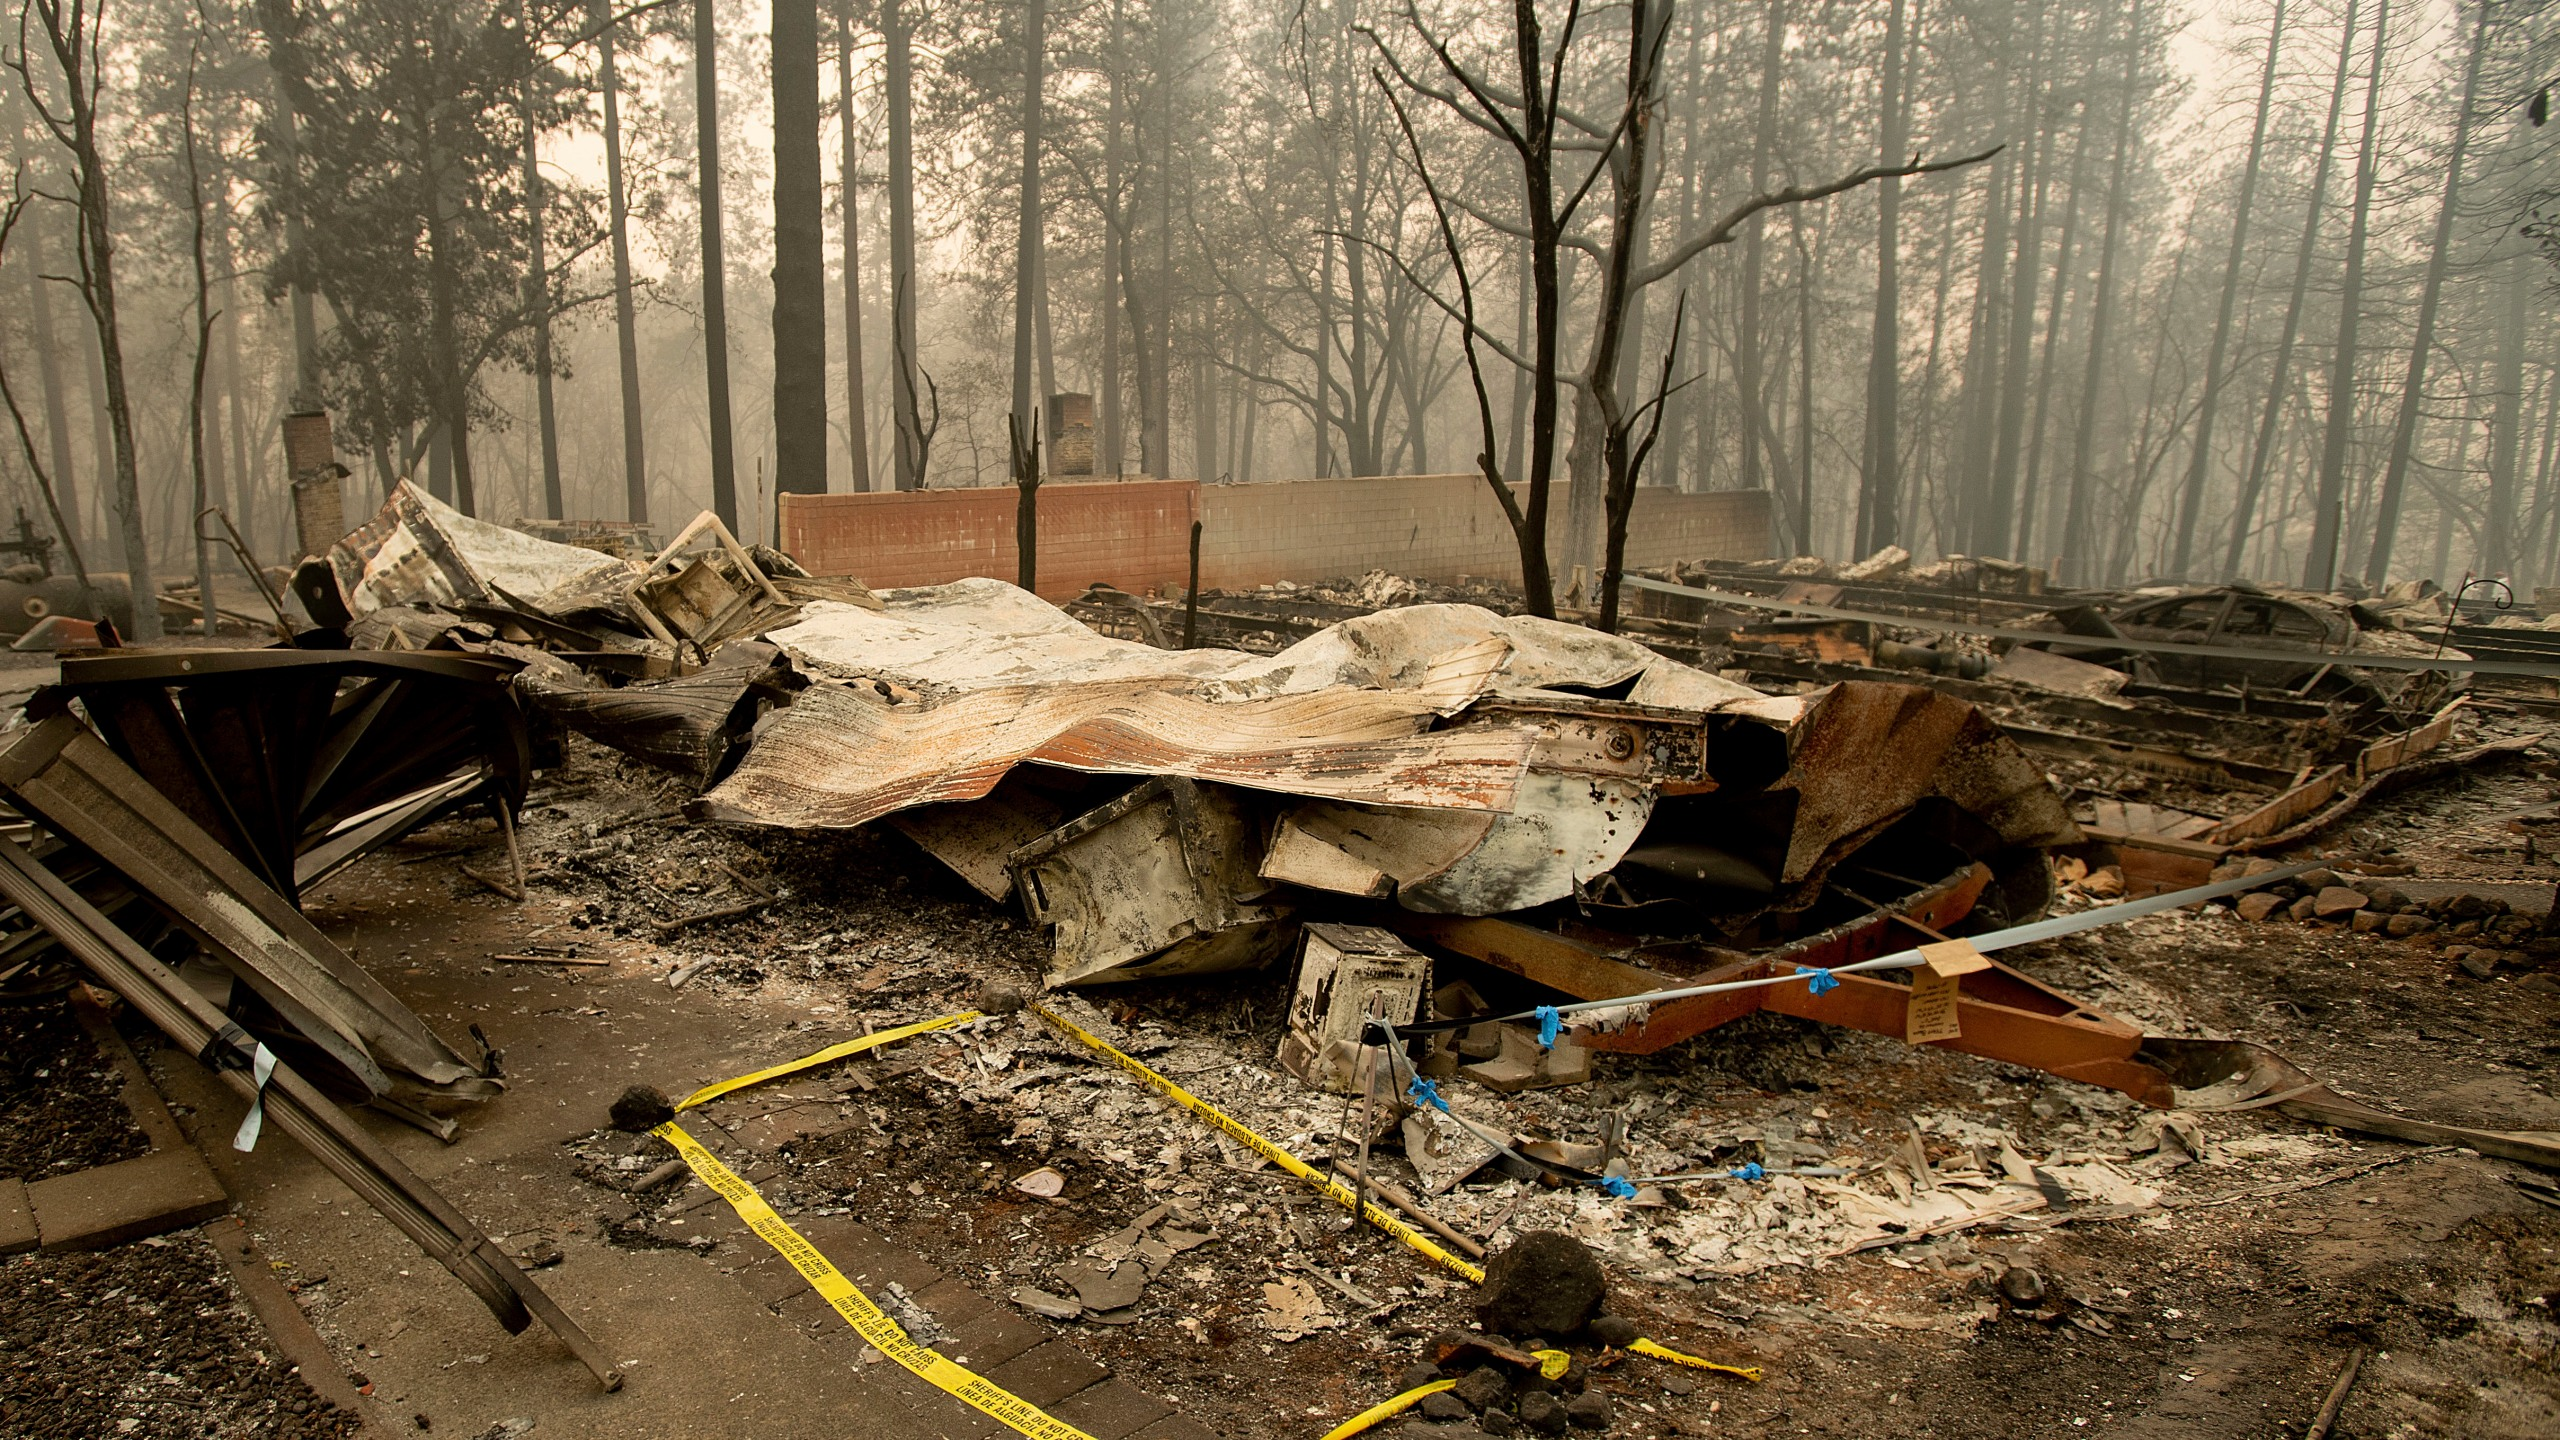 APTOPIX_California_Wildfires_33896-159532.jpg53384660